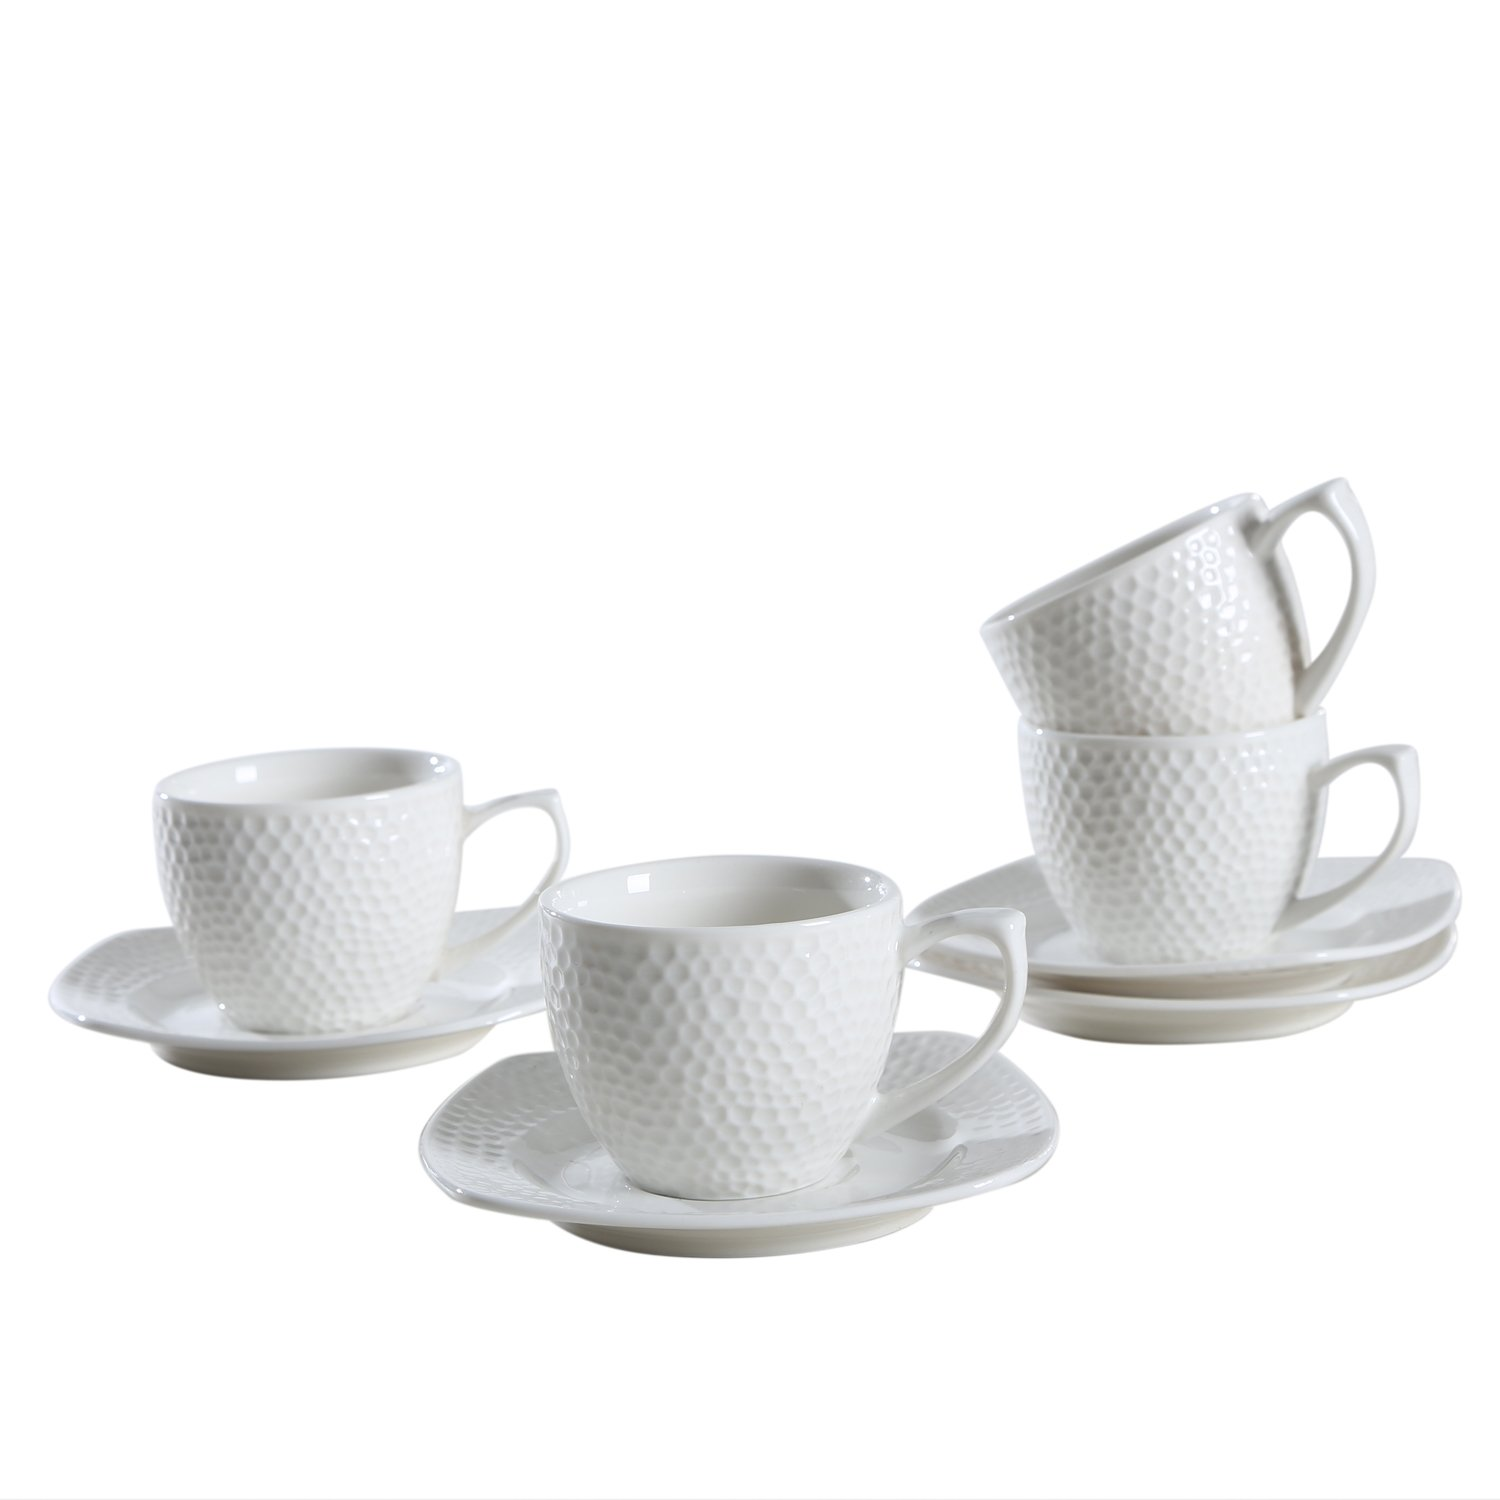 SOLECASA ''3-OZ/Set of 4'' Porcelain/Ceramic Espresso Cup and Saucer Set,White-Great as Holiday Gift/Present